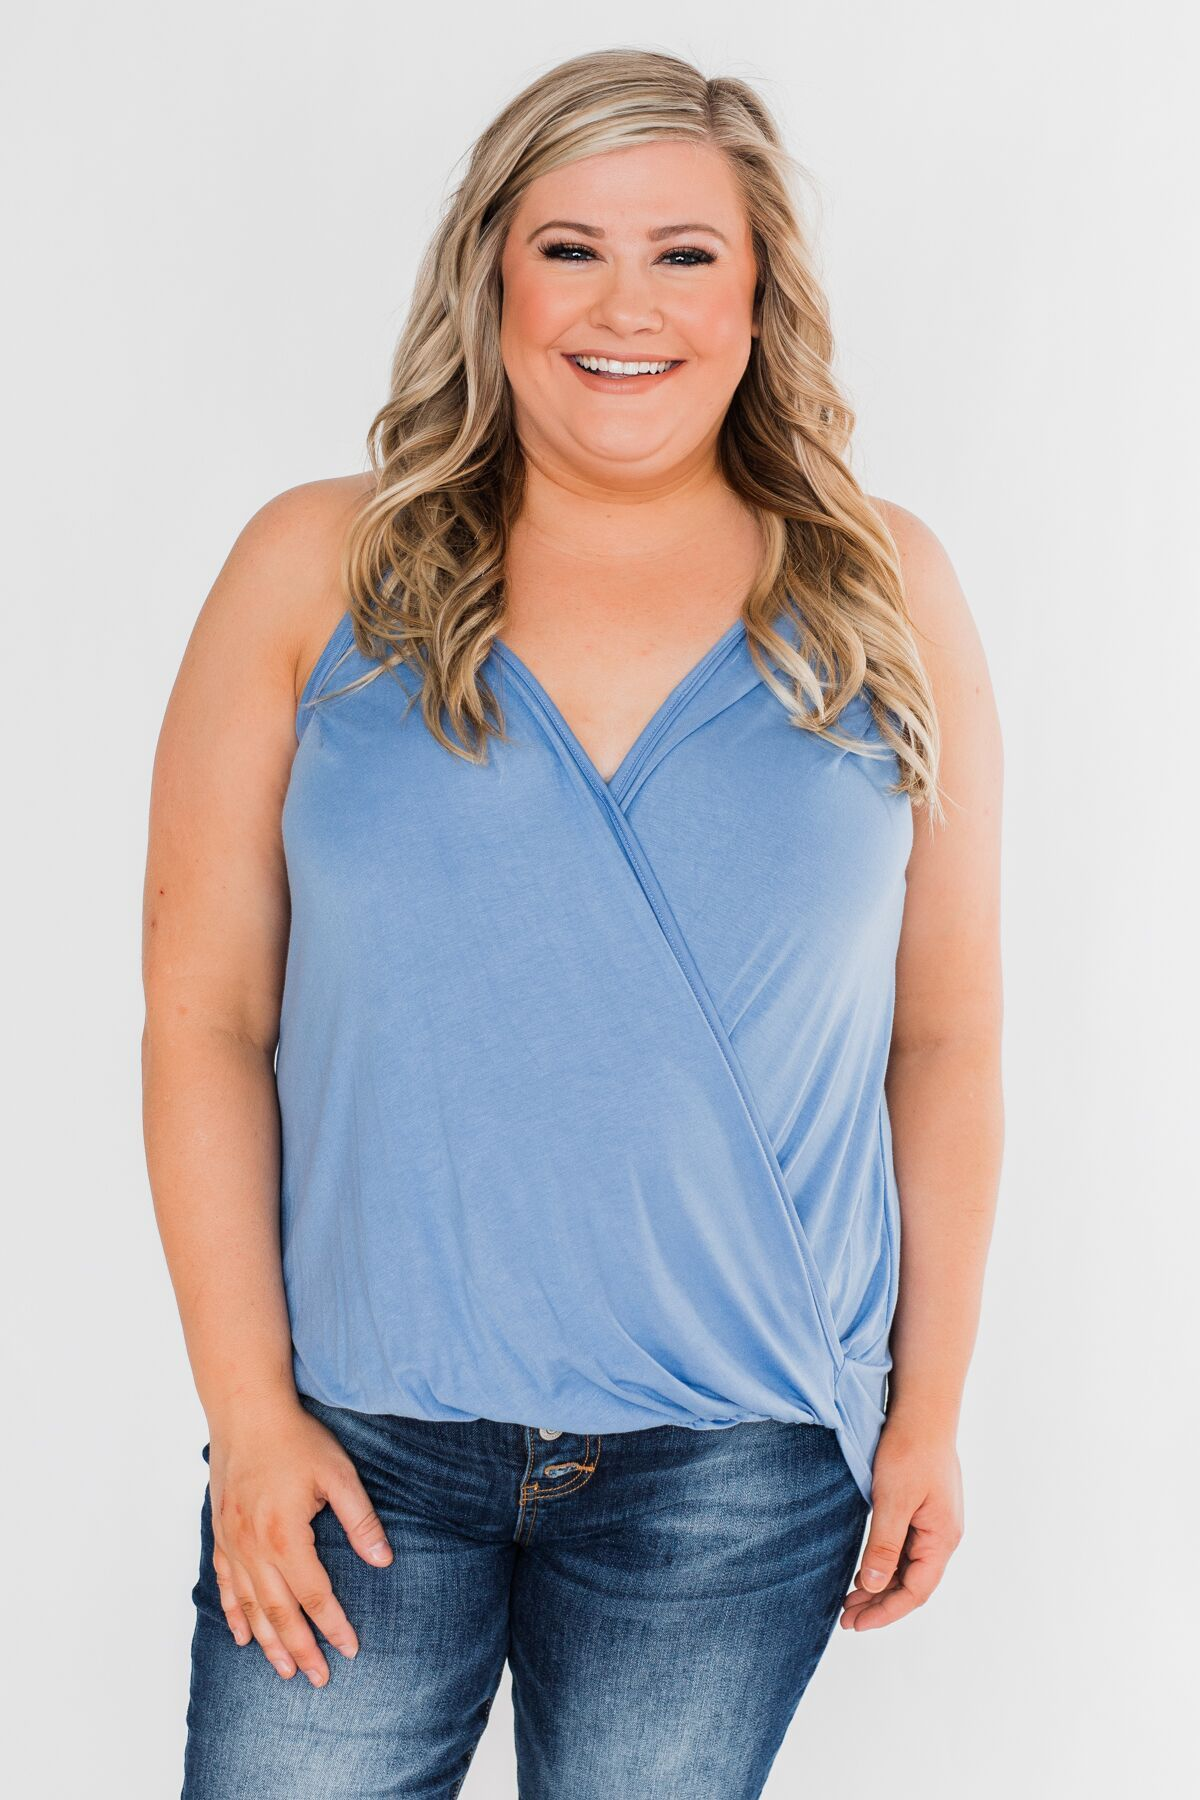 Something Simple Wrap Tank Top- Light Denim